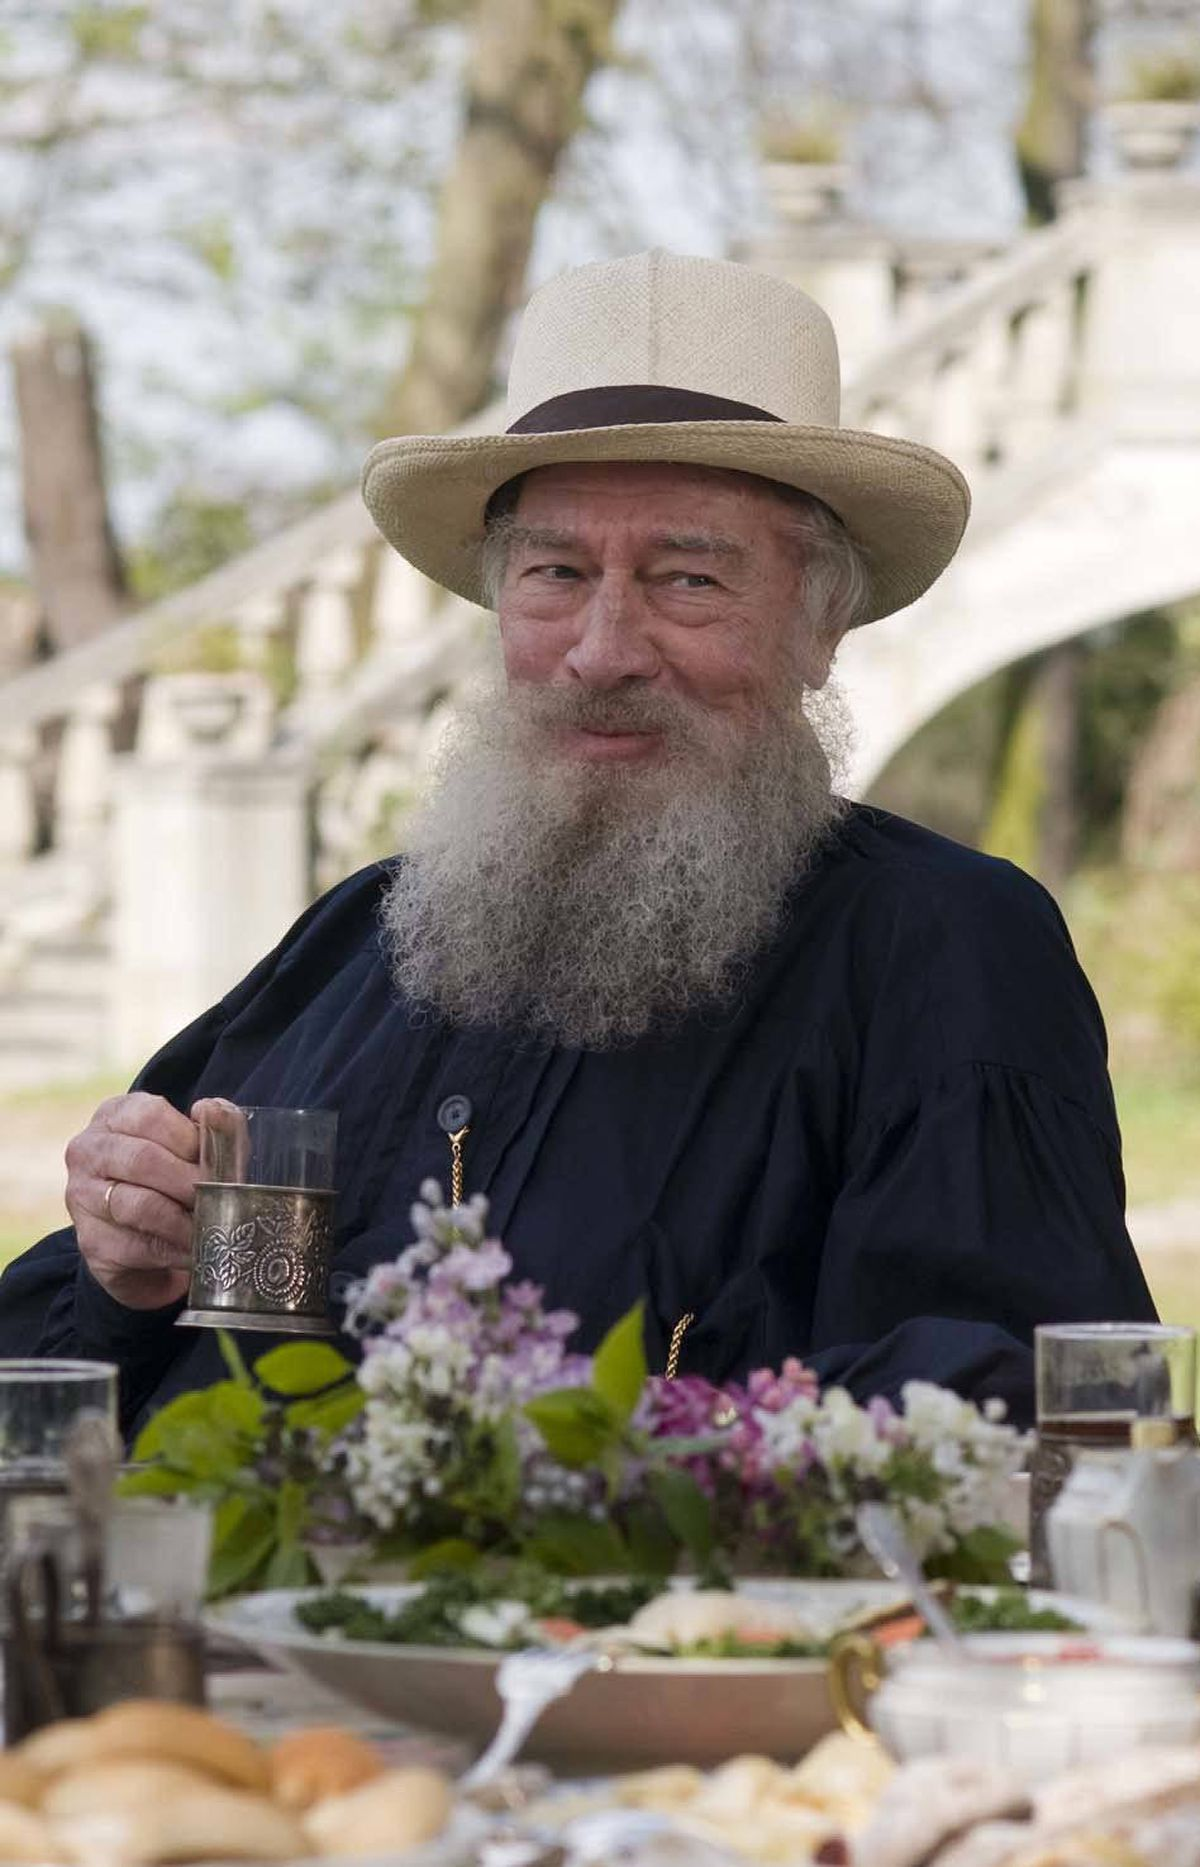 Christopher Plummer as Tolstoy in The Last Station (2009).